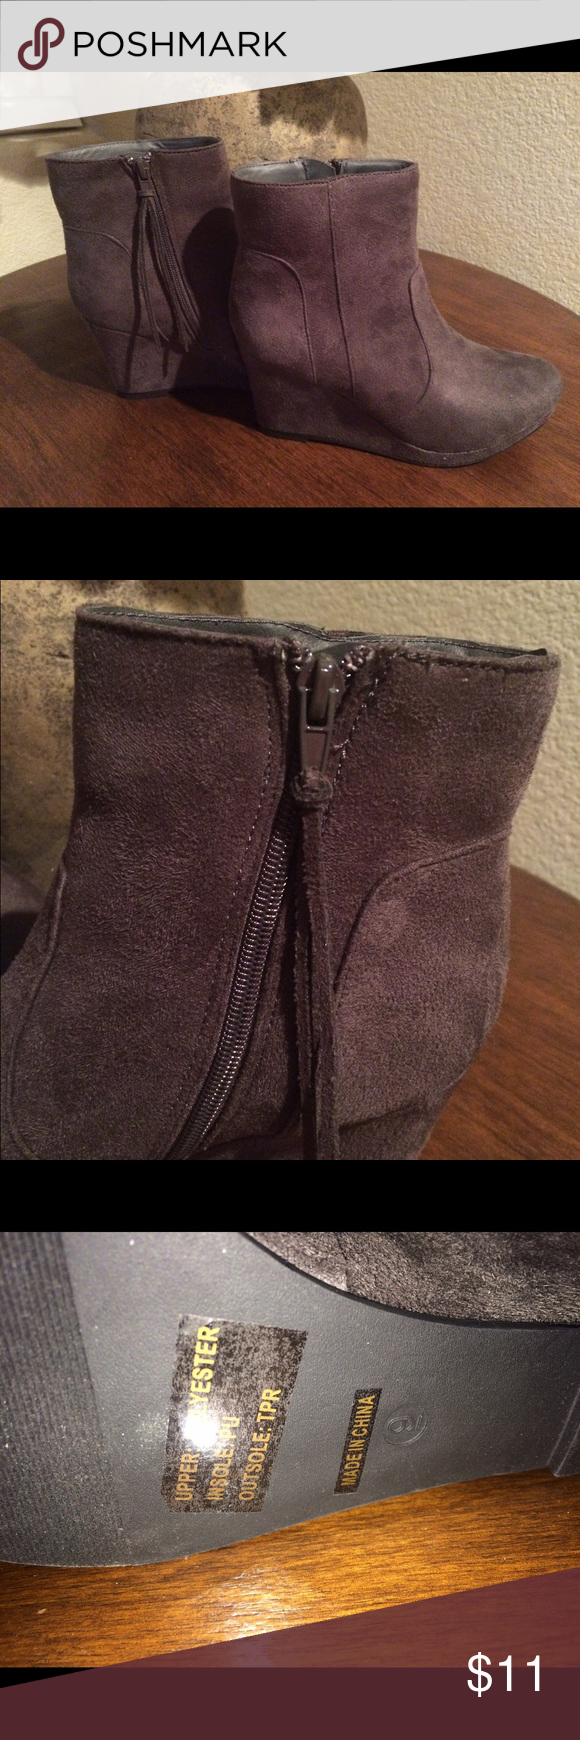 Suede look a like Gray a Boots Cute gray boots with a fun tassled zipper! Never worn! Shoes Ankle Boots & Booties